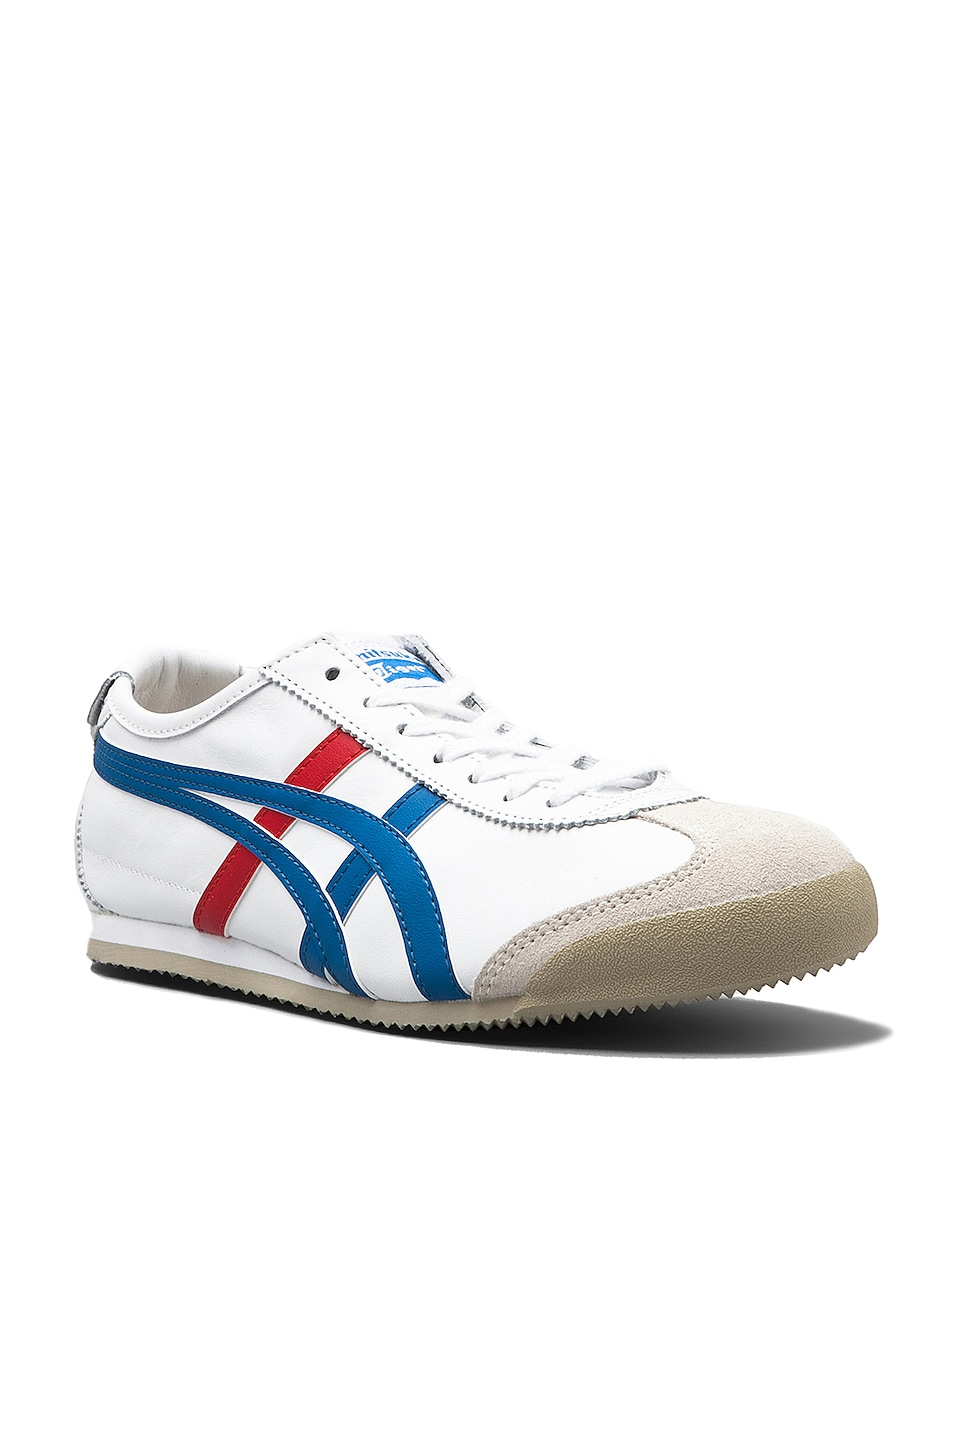 Image 2 of Onitsuka Tiger Mexico 66 in White & Blue